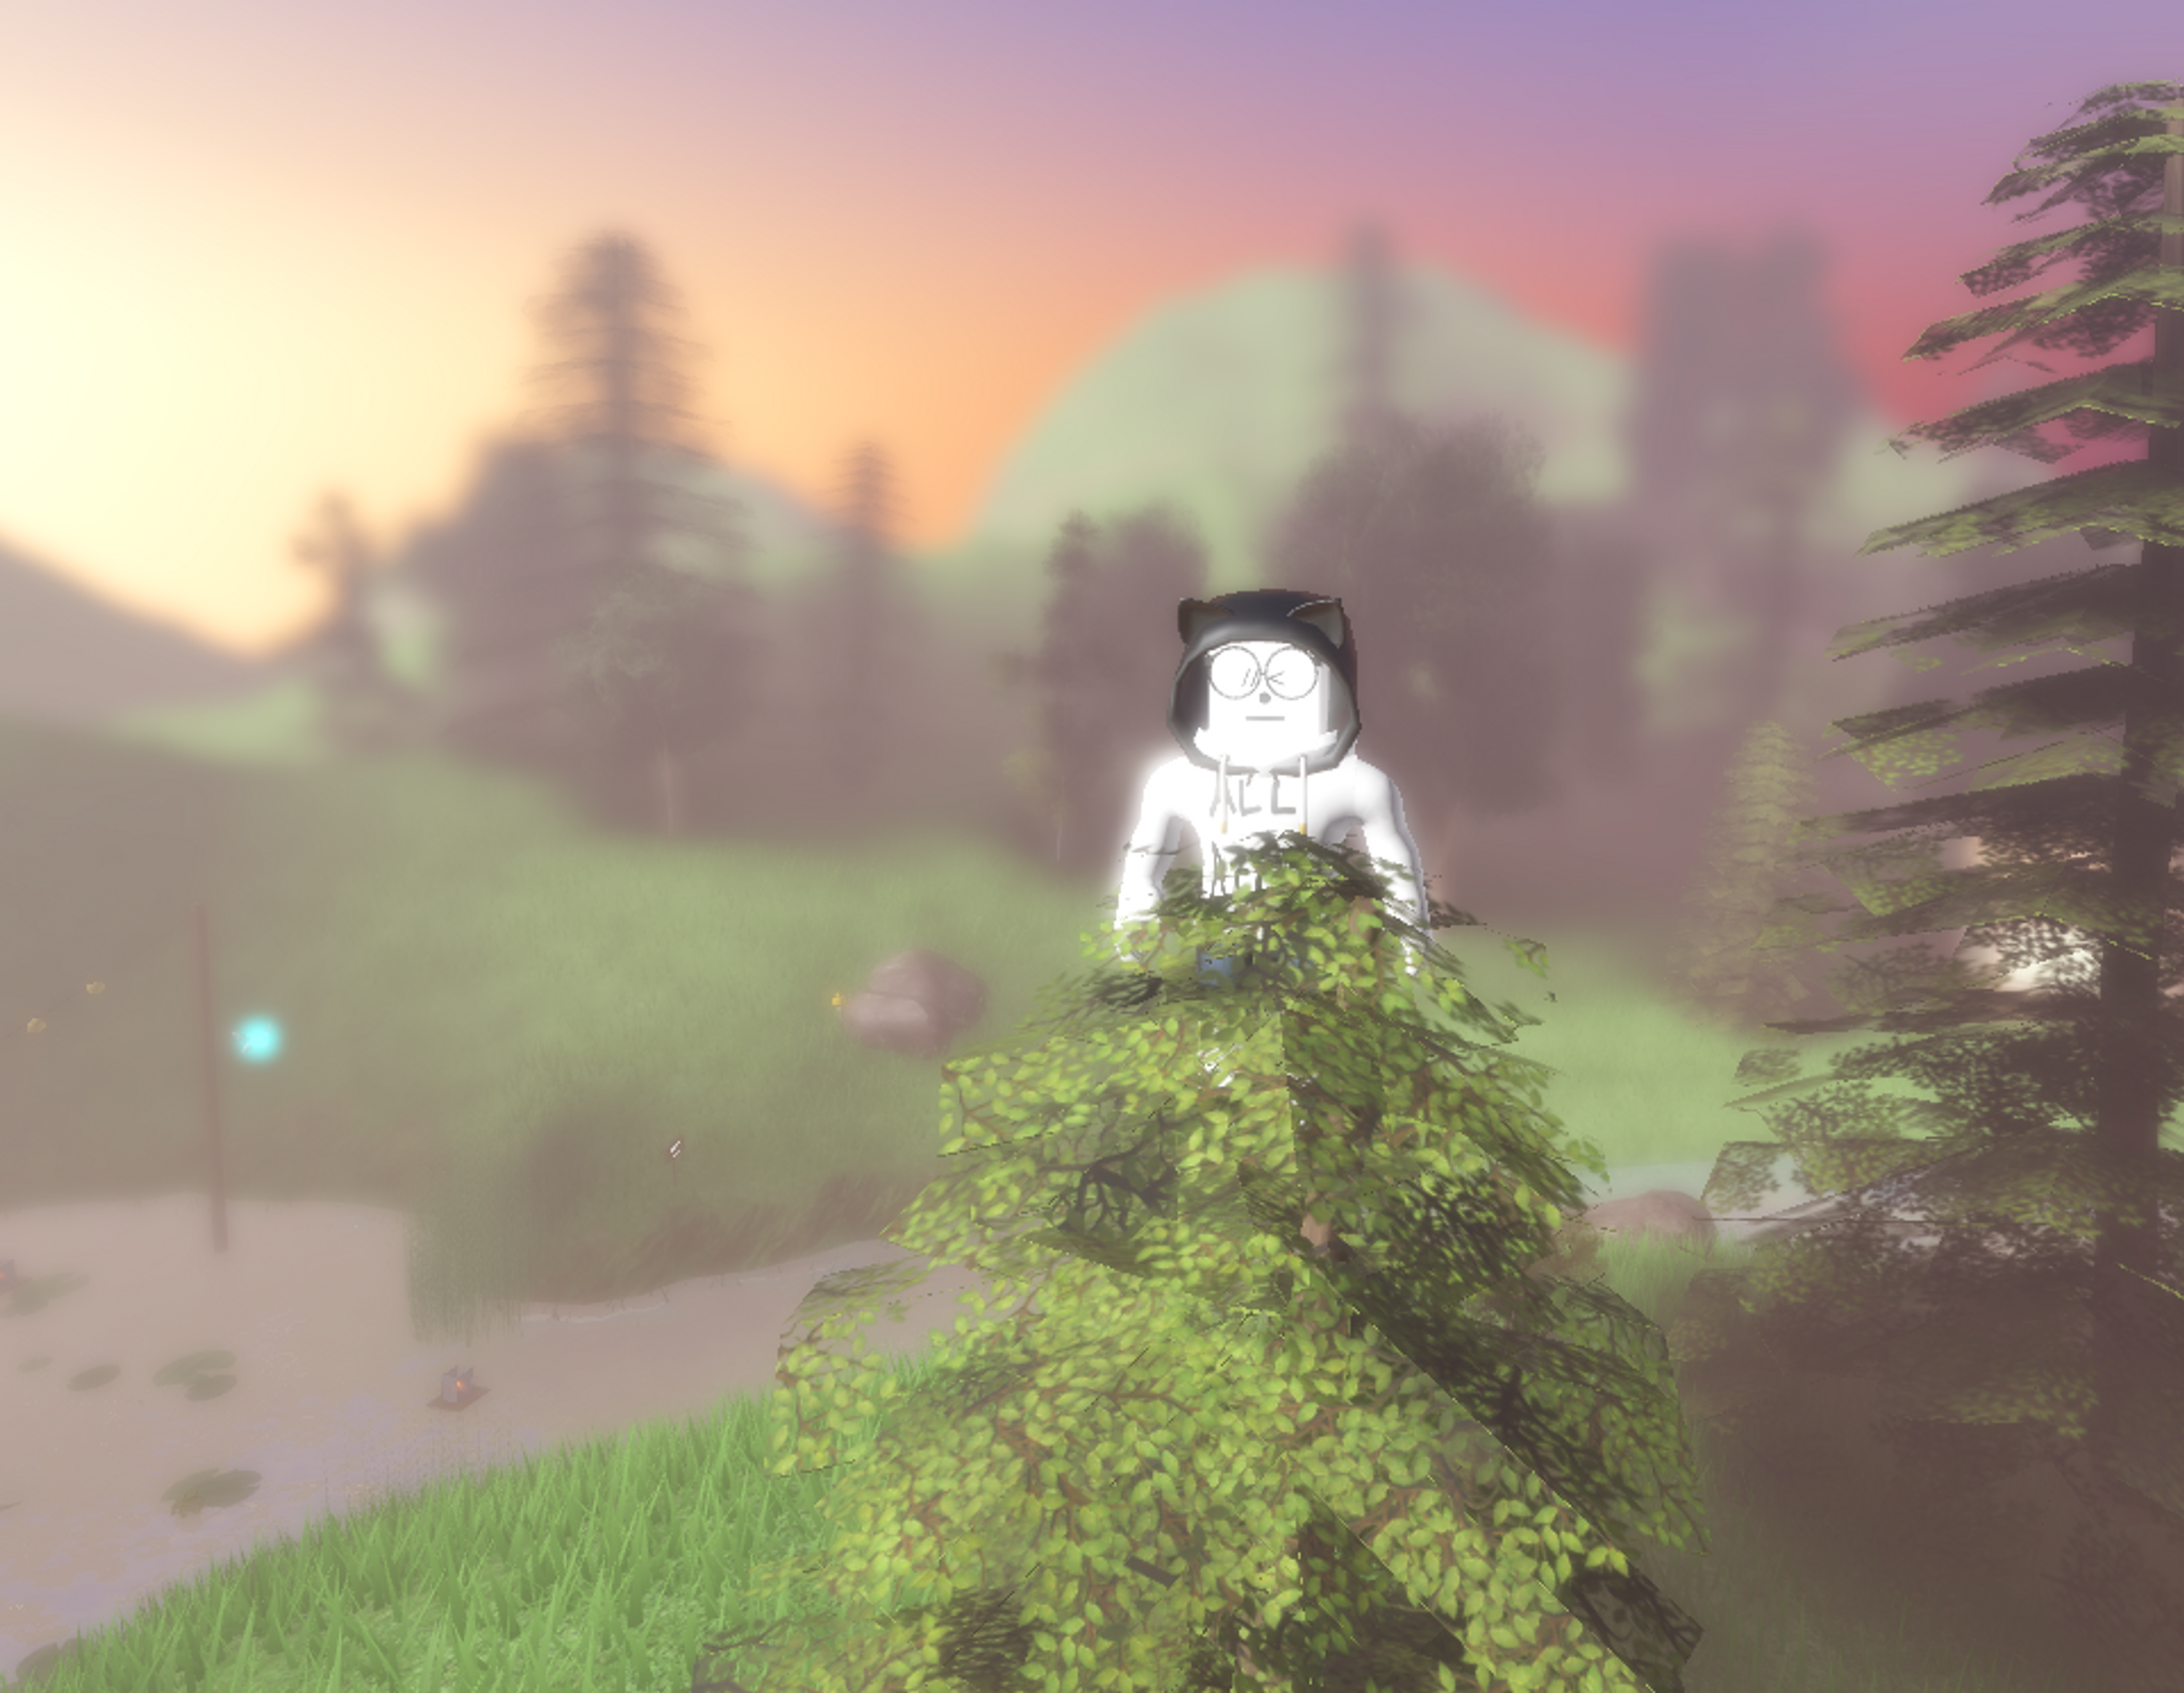 Image of my avatar, a white cartoon-style figure, standing in the top of a pine tree with a blurry mountainous landscape and sunset in the background.